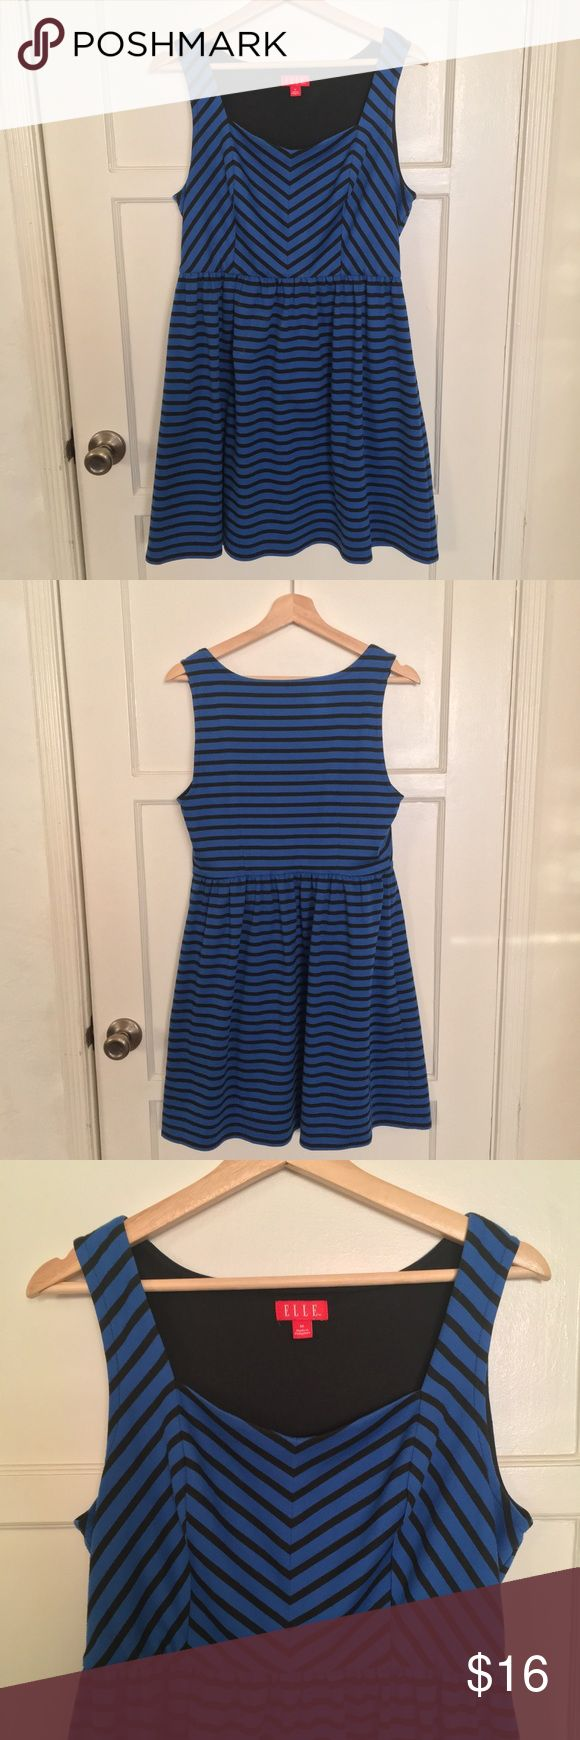 ELLE retro black and blue striped chevron dress Black and blue chevron strip dress in good condition. I adore this dress and always got compliments on it but sadly it doesn't fit anymore. It's got a little bit of stretch to it and it's very comfortable. Elle Dresses Midi